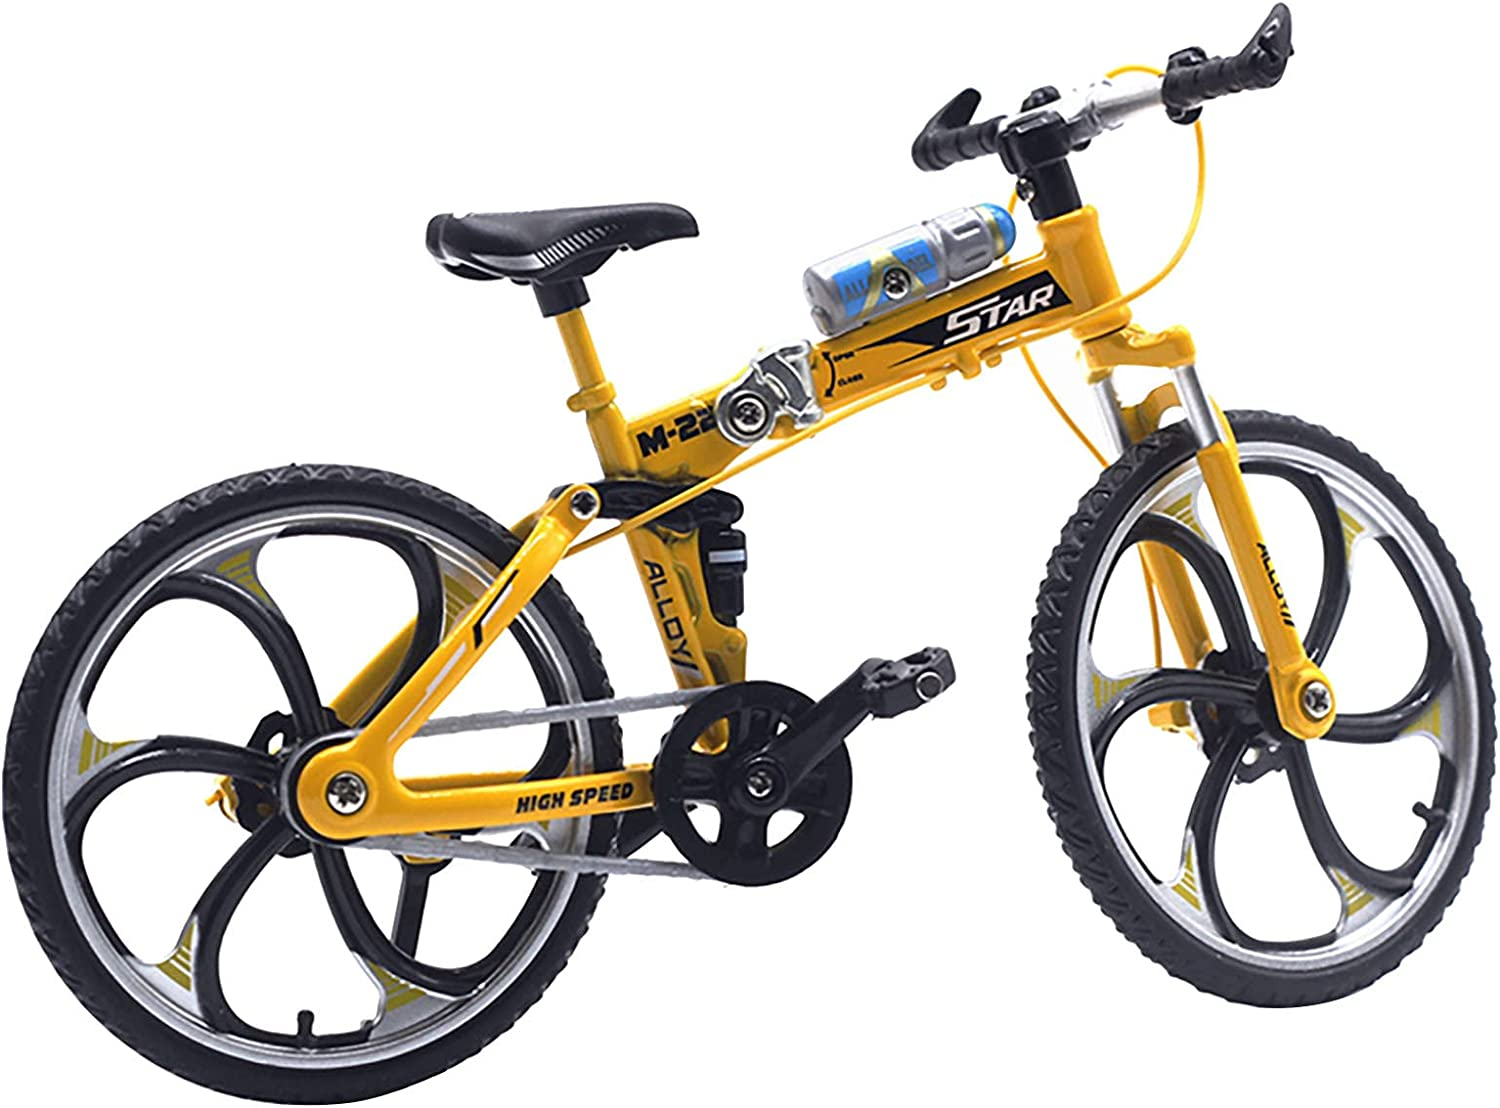 Mini Dirt San Diego Mall Bike Crafts for Home Model Bikes Metal Bicycle Max 72% OFF Toys Mo